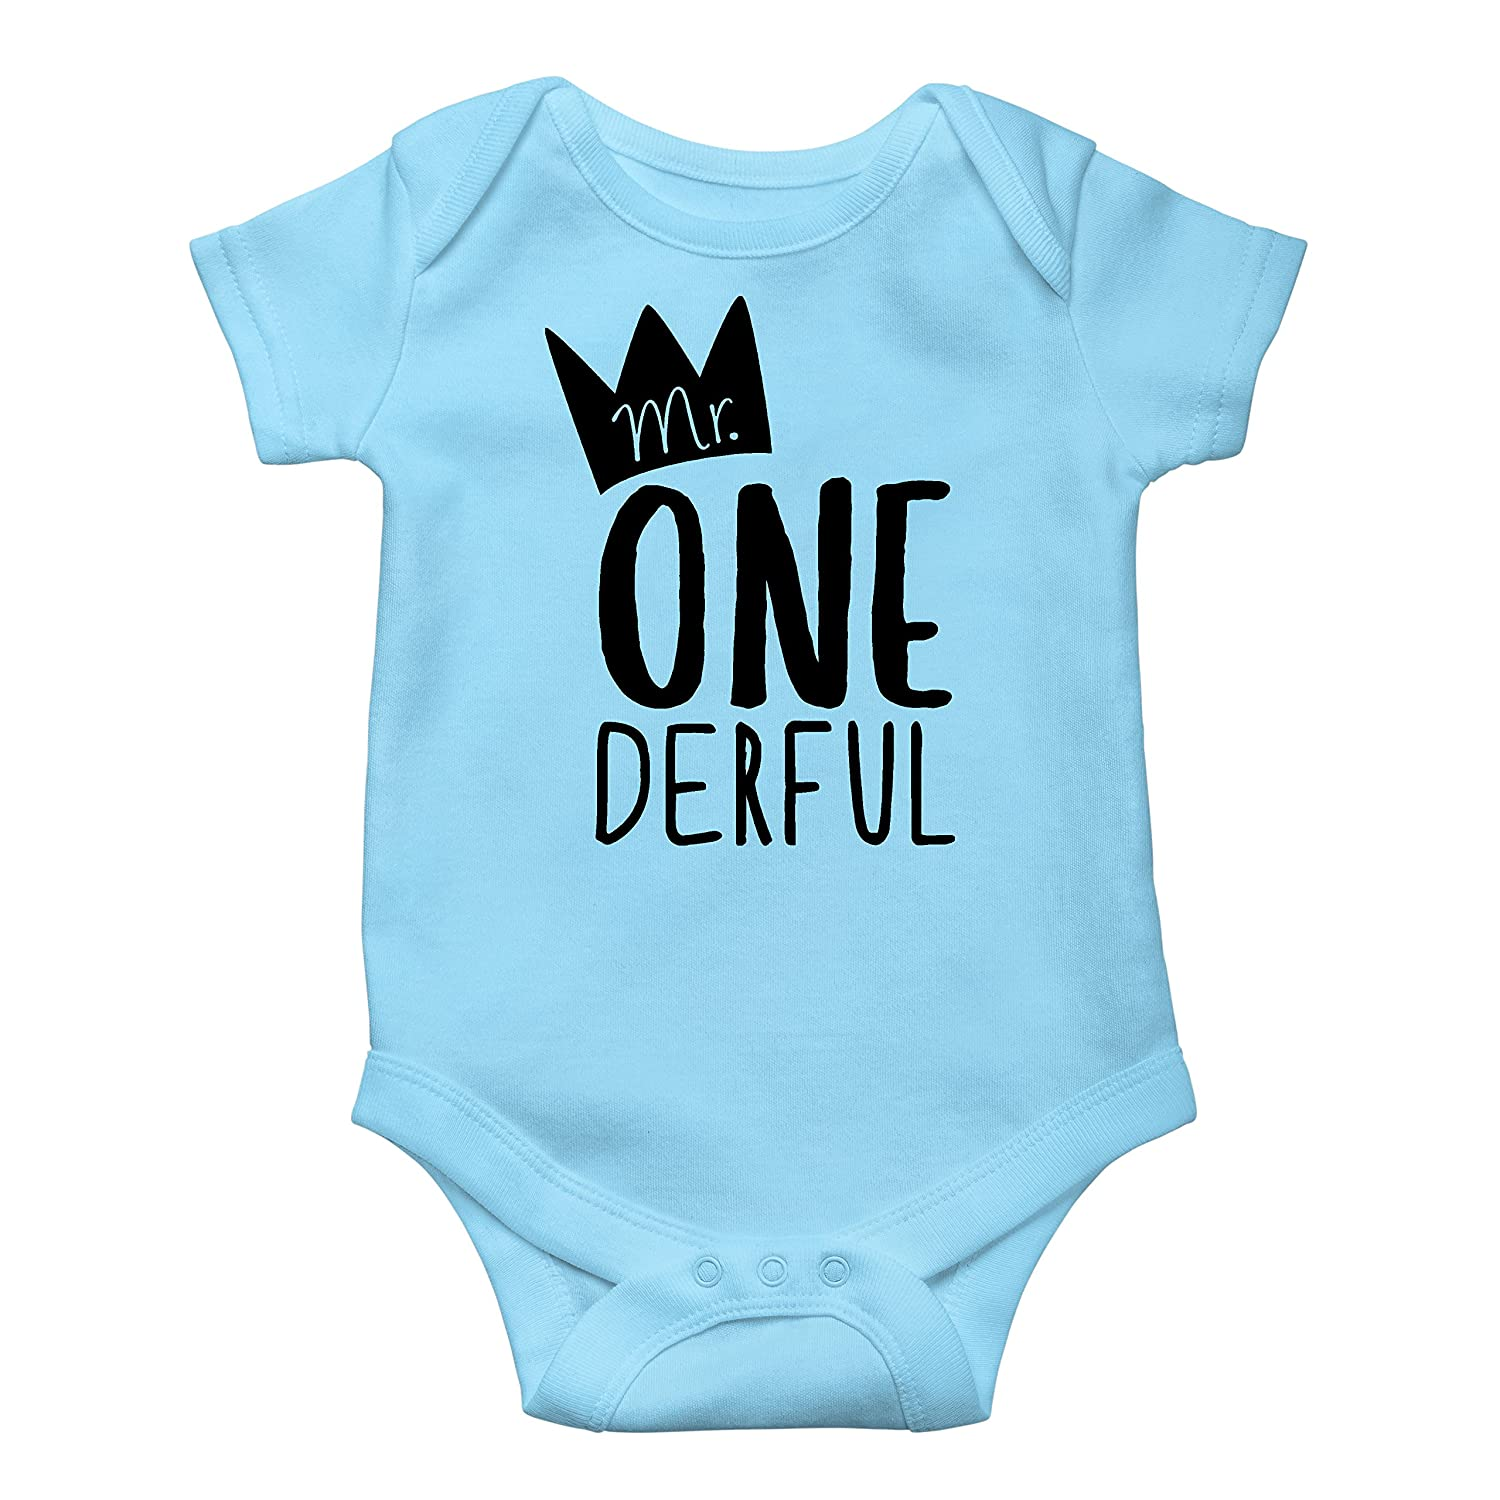 Mr One-Derful Baby Boys 1st Birthday Bodysuit First Birthday Outfit for Boys MRONEDERFUL-PAR